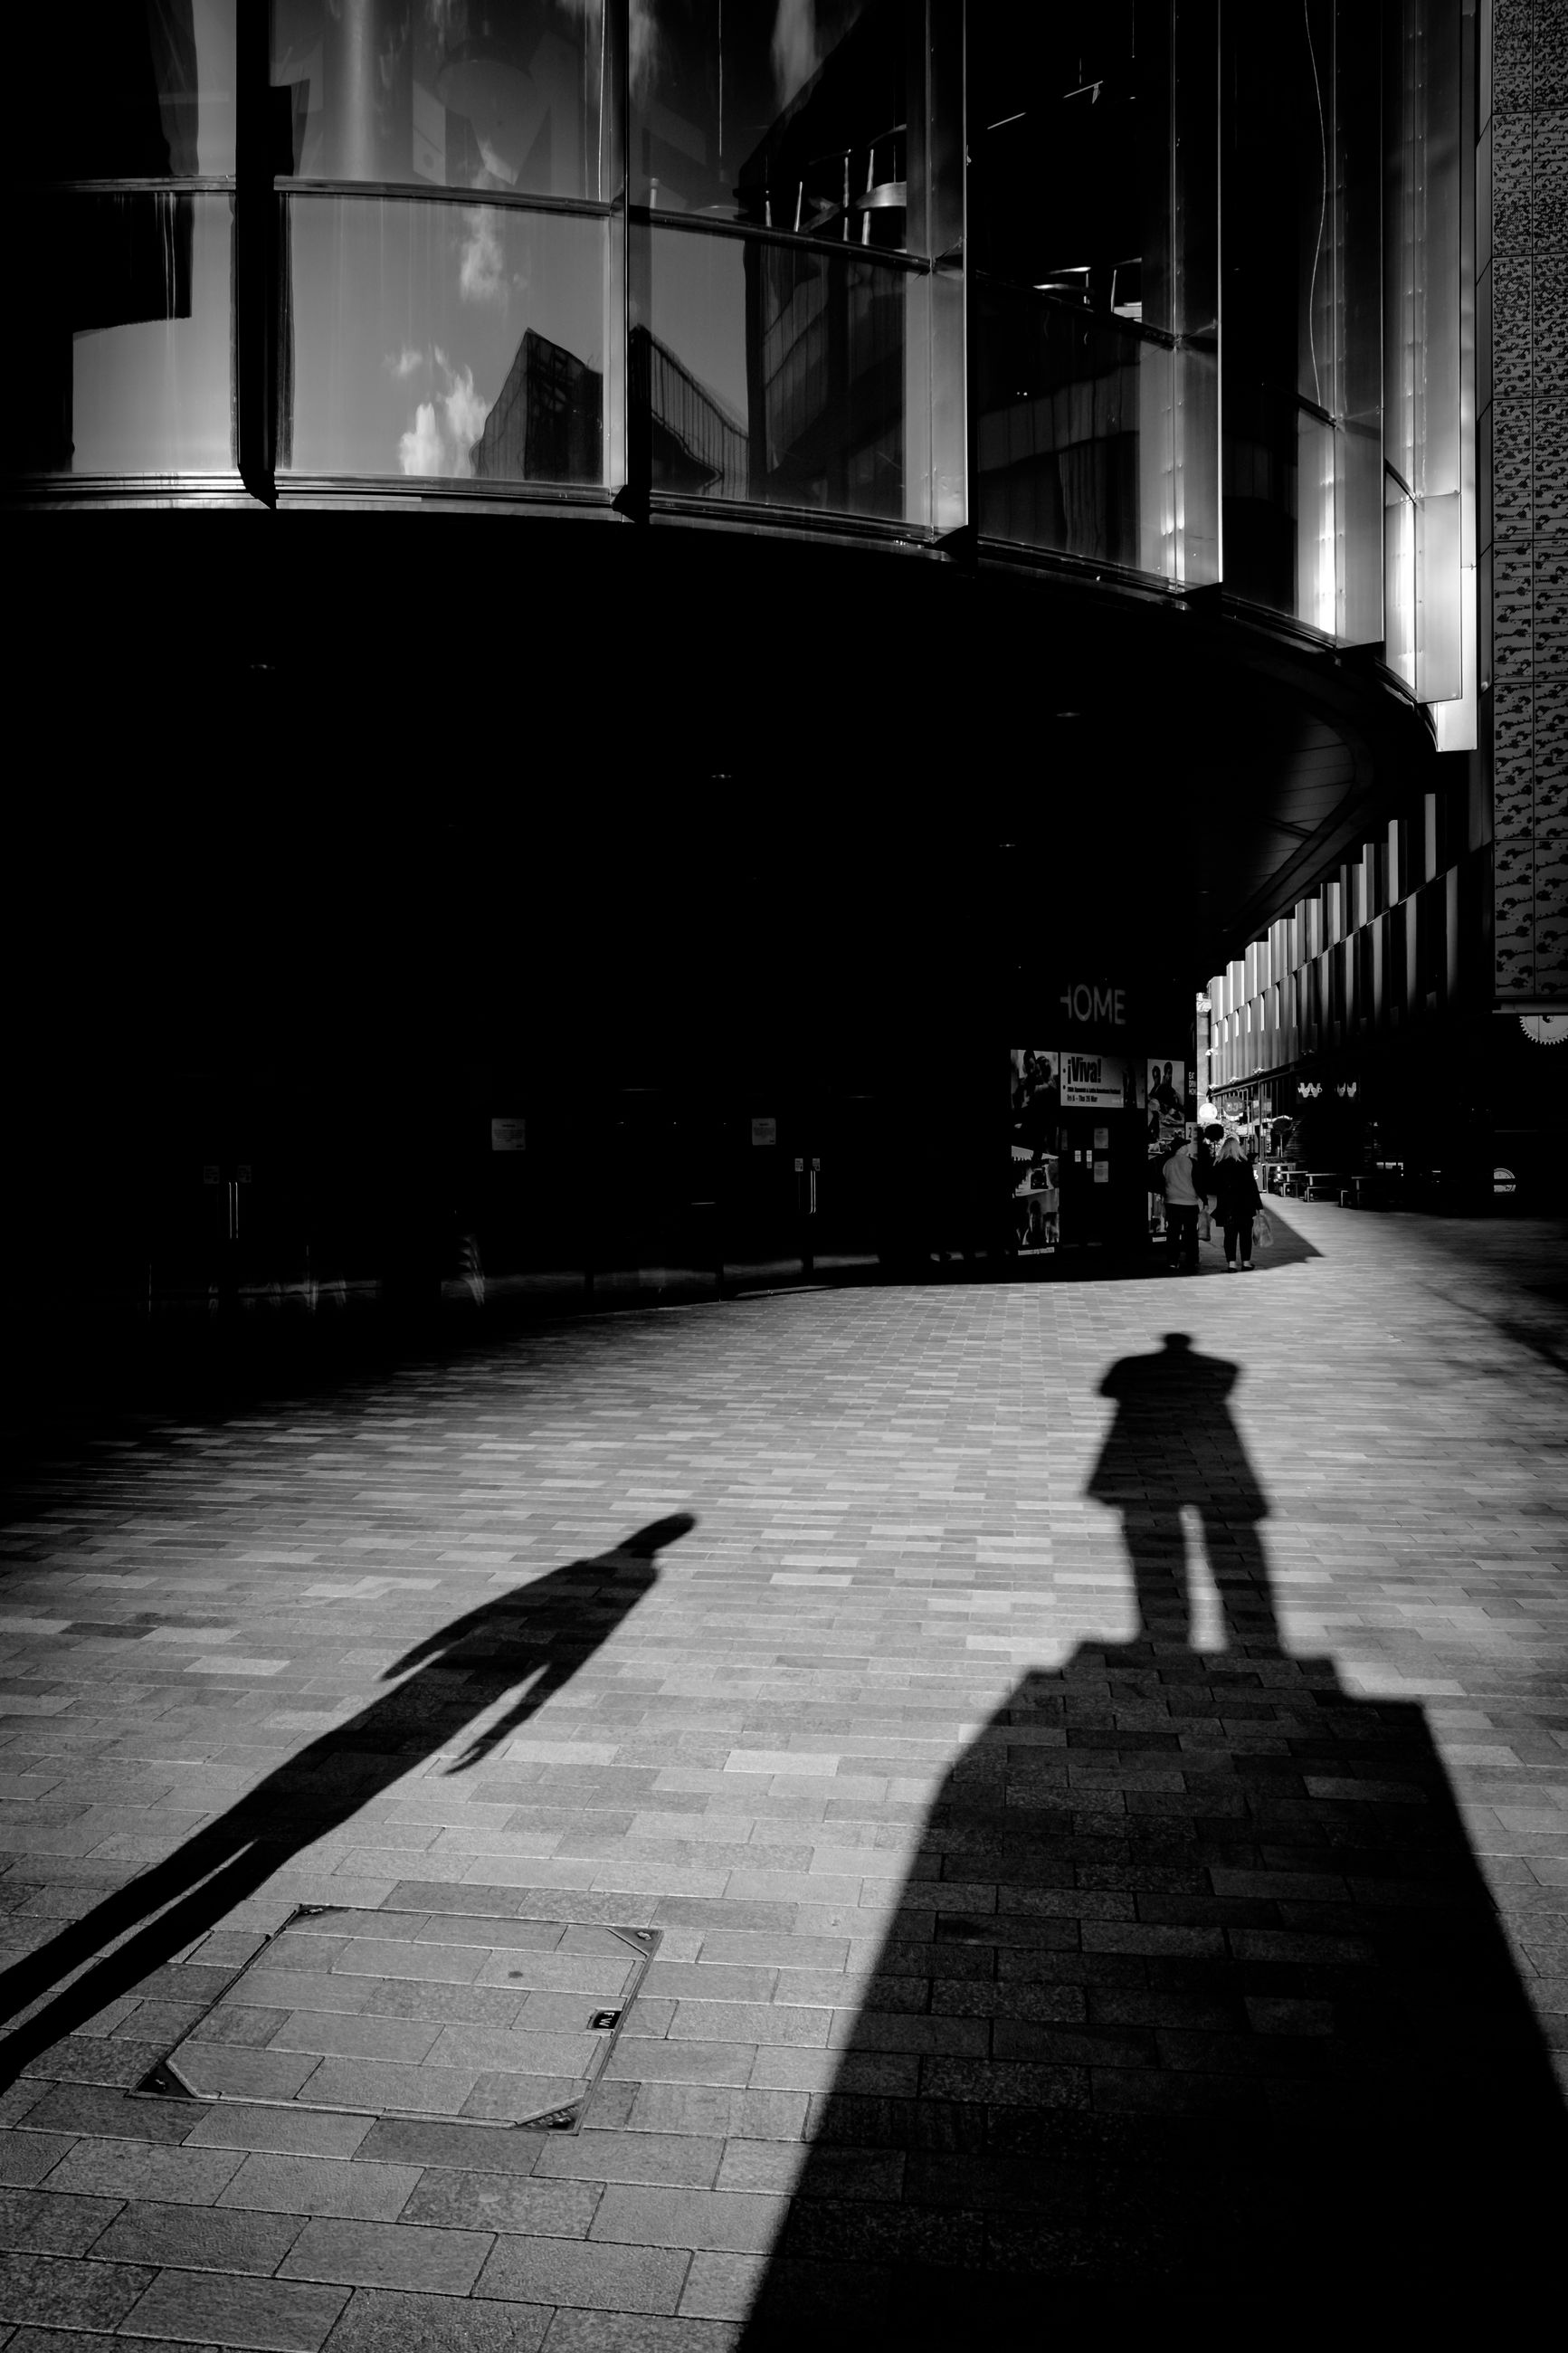 shadow, architecture, built structure, night, city, one person, real people, building exterior, walking, street, lifestyles, nature, unrecognizable person, illuminated, silhouette, outdoors, incidental people, footpath, focus on shadow